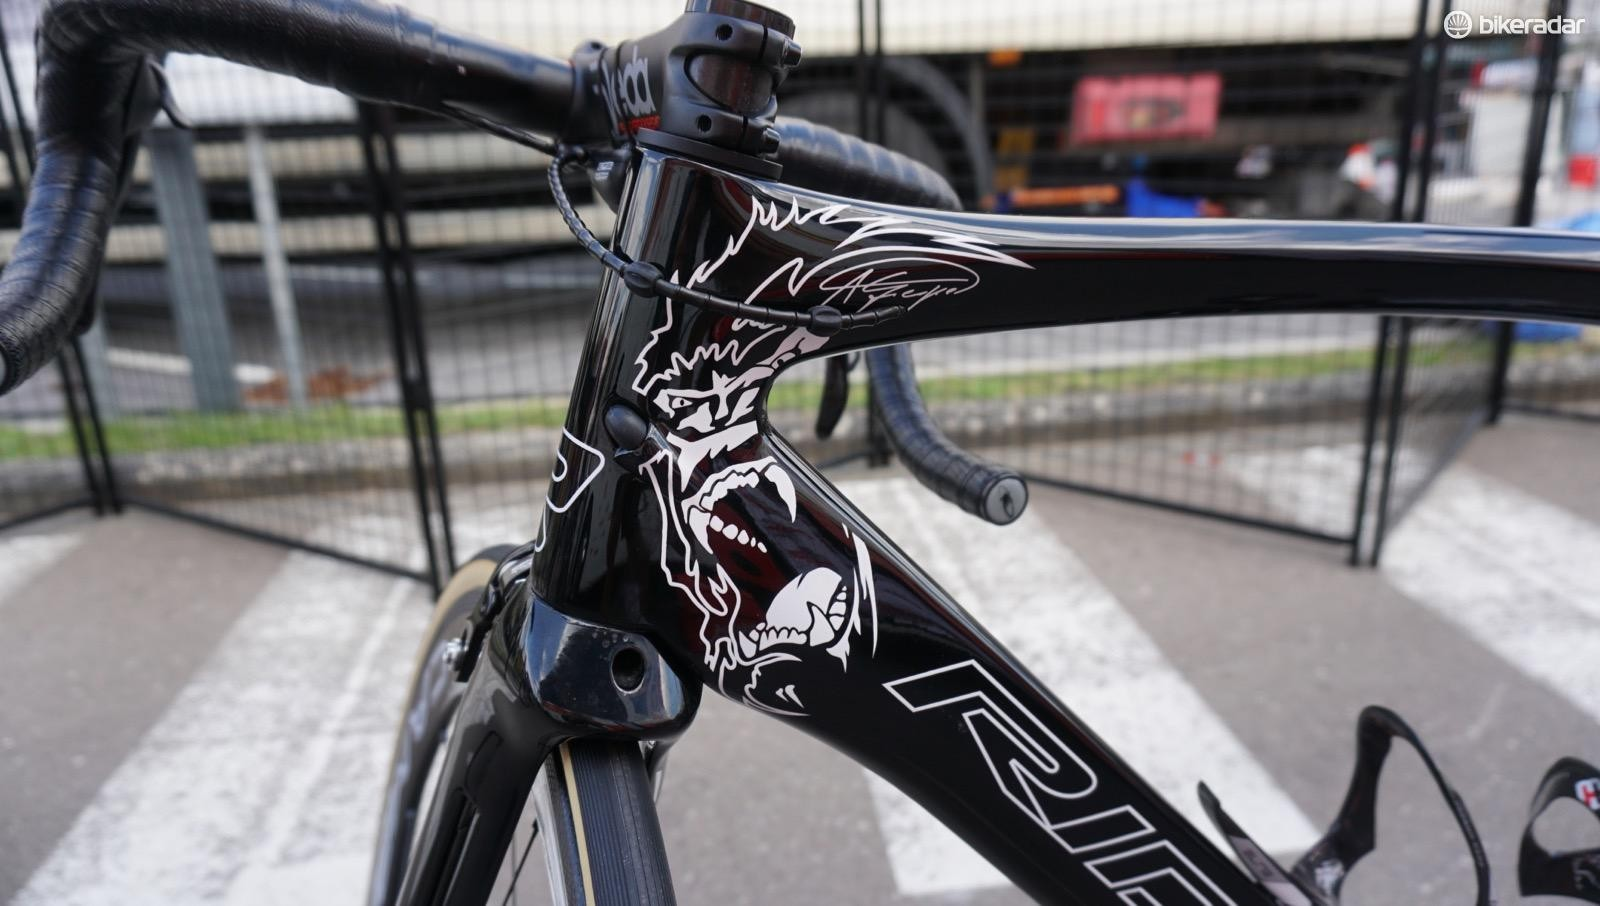 Since Marcus Burghardt recently took over the German national title, Andre Greipel is back onto a plain black Ridley Noah SL for the 2017 Tour de France